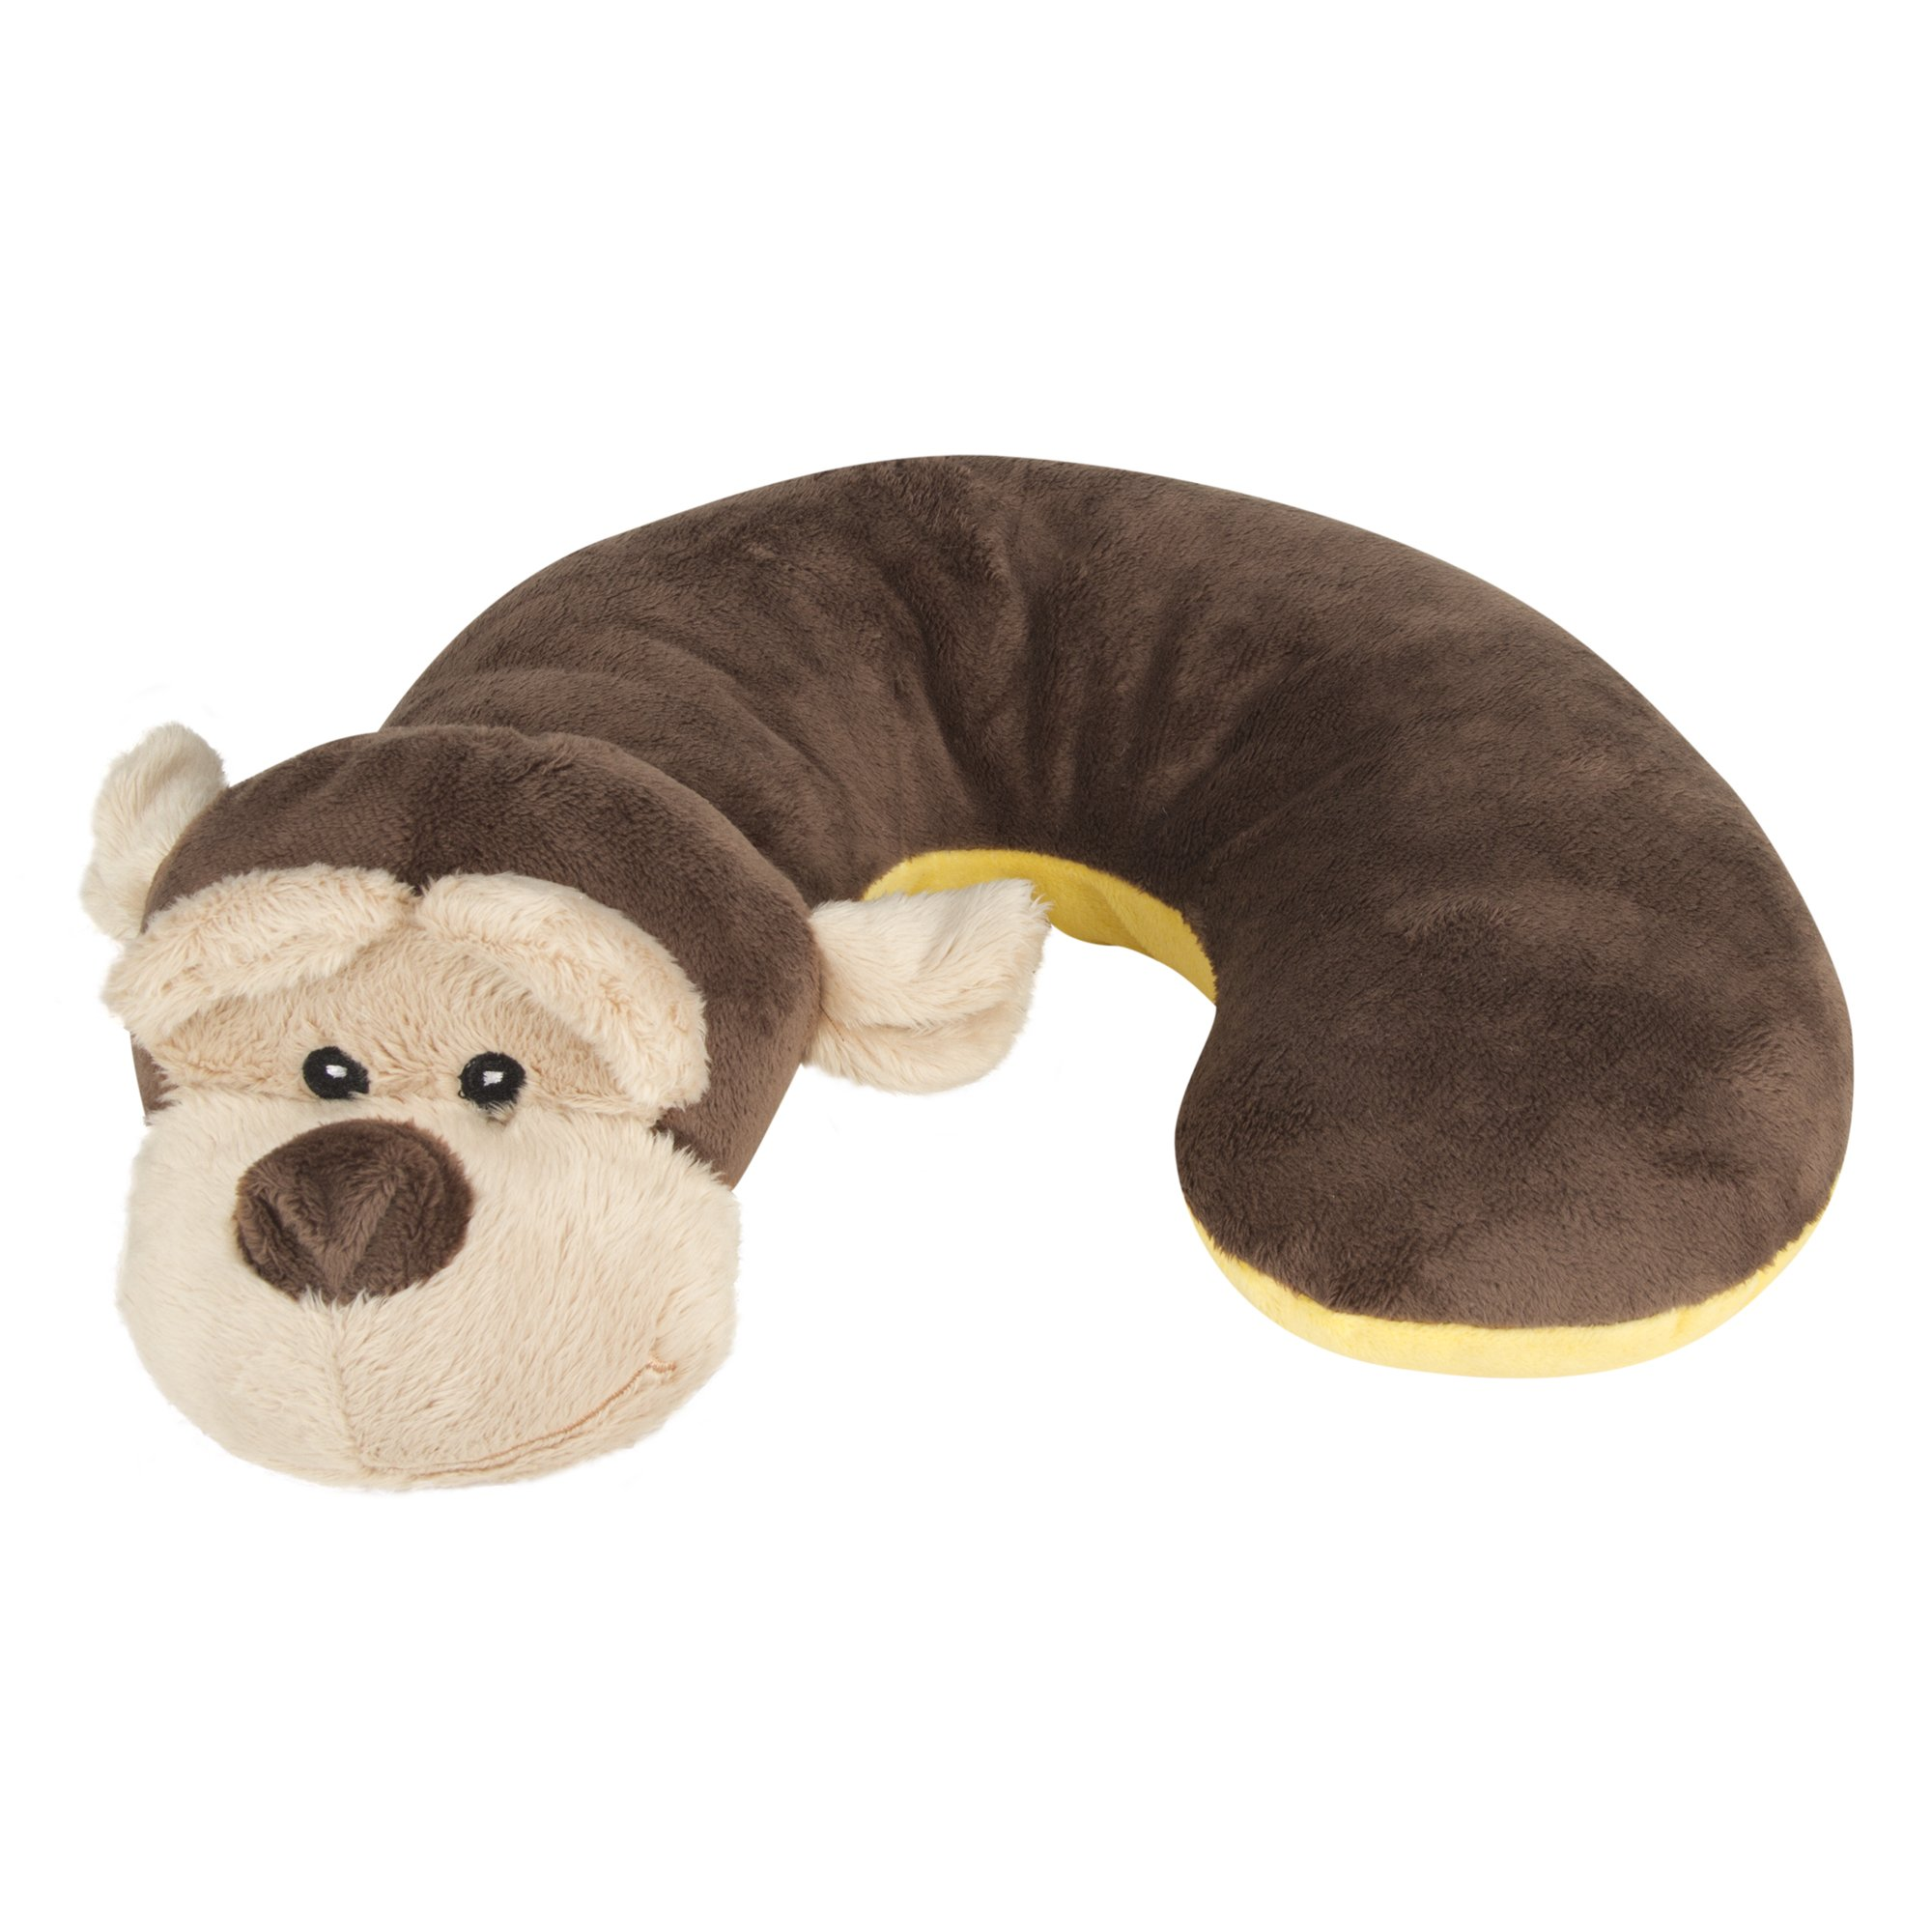 Animal Planet Travel Pillow for kids, Kids Travel Pillow, Neck Support Pillow, Pillow for kids, Toddler Car Seat Pillow, Baby Head Support, Child Travel, Kids Neck Pillow, Monkey, Brown